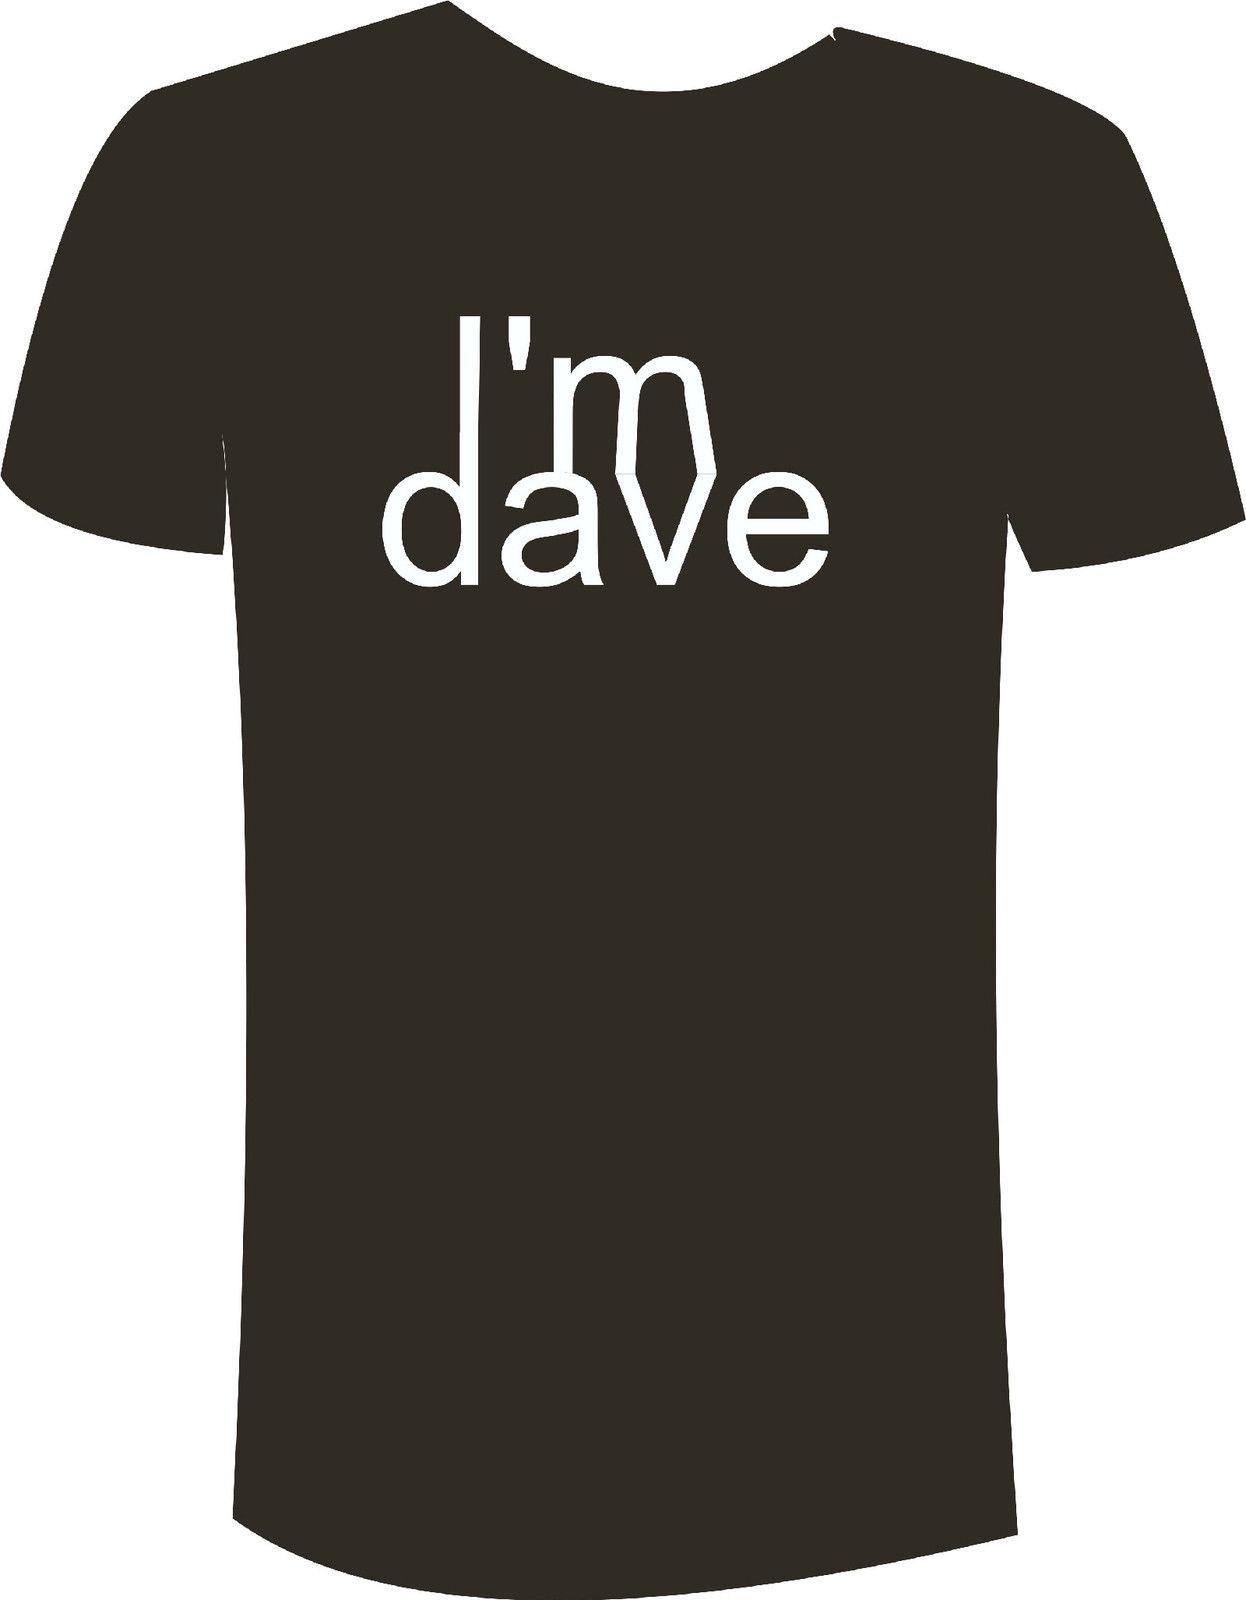 """IM DAVE"" FUNNY PRINTED T SHIRTS SIZES S-5XL BNWT GREAT XMAS GIFT Funny free shipping Unisex Casual"